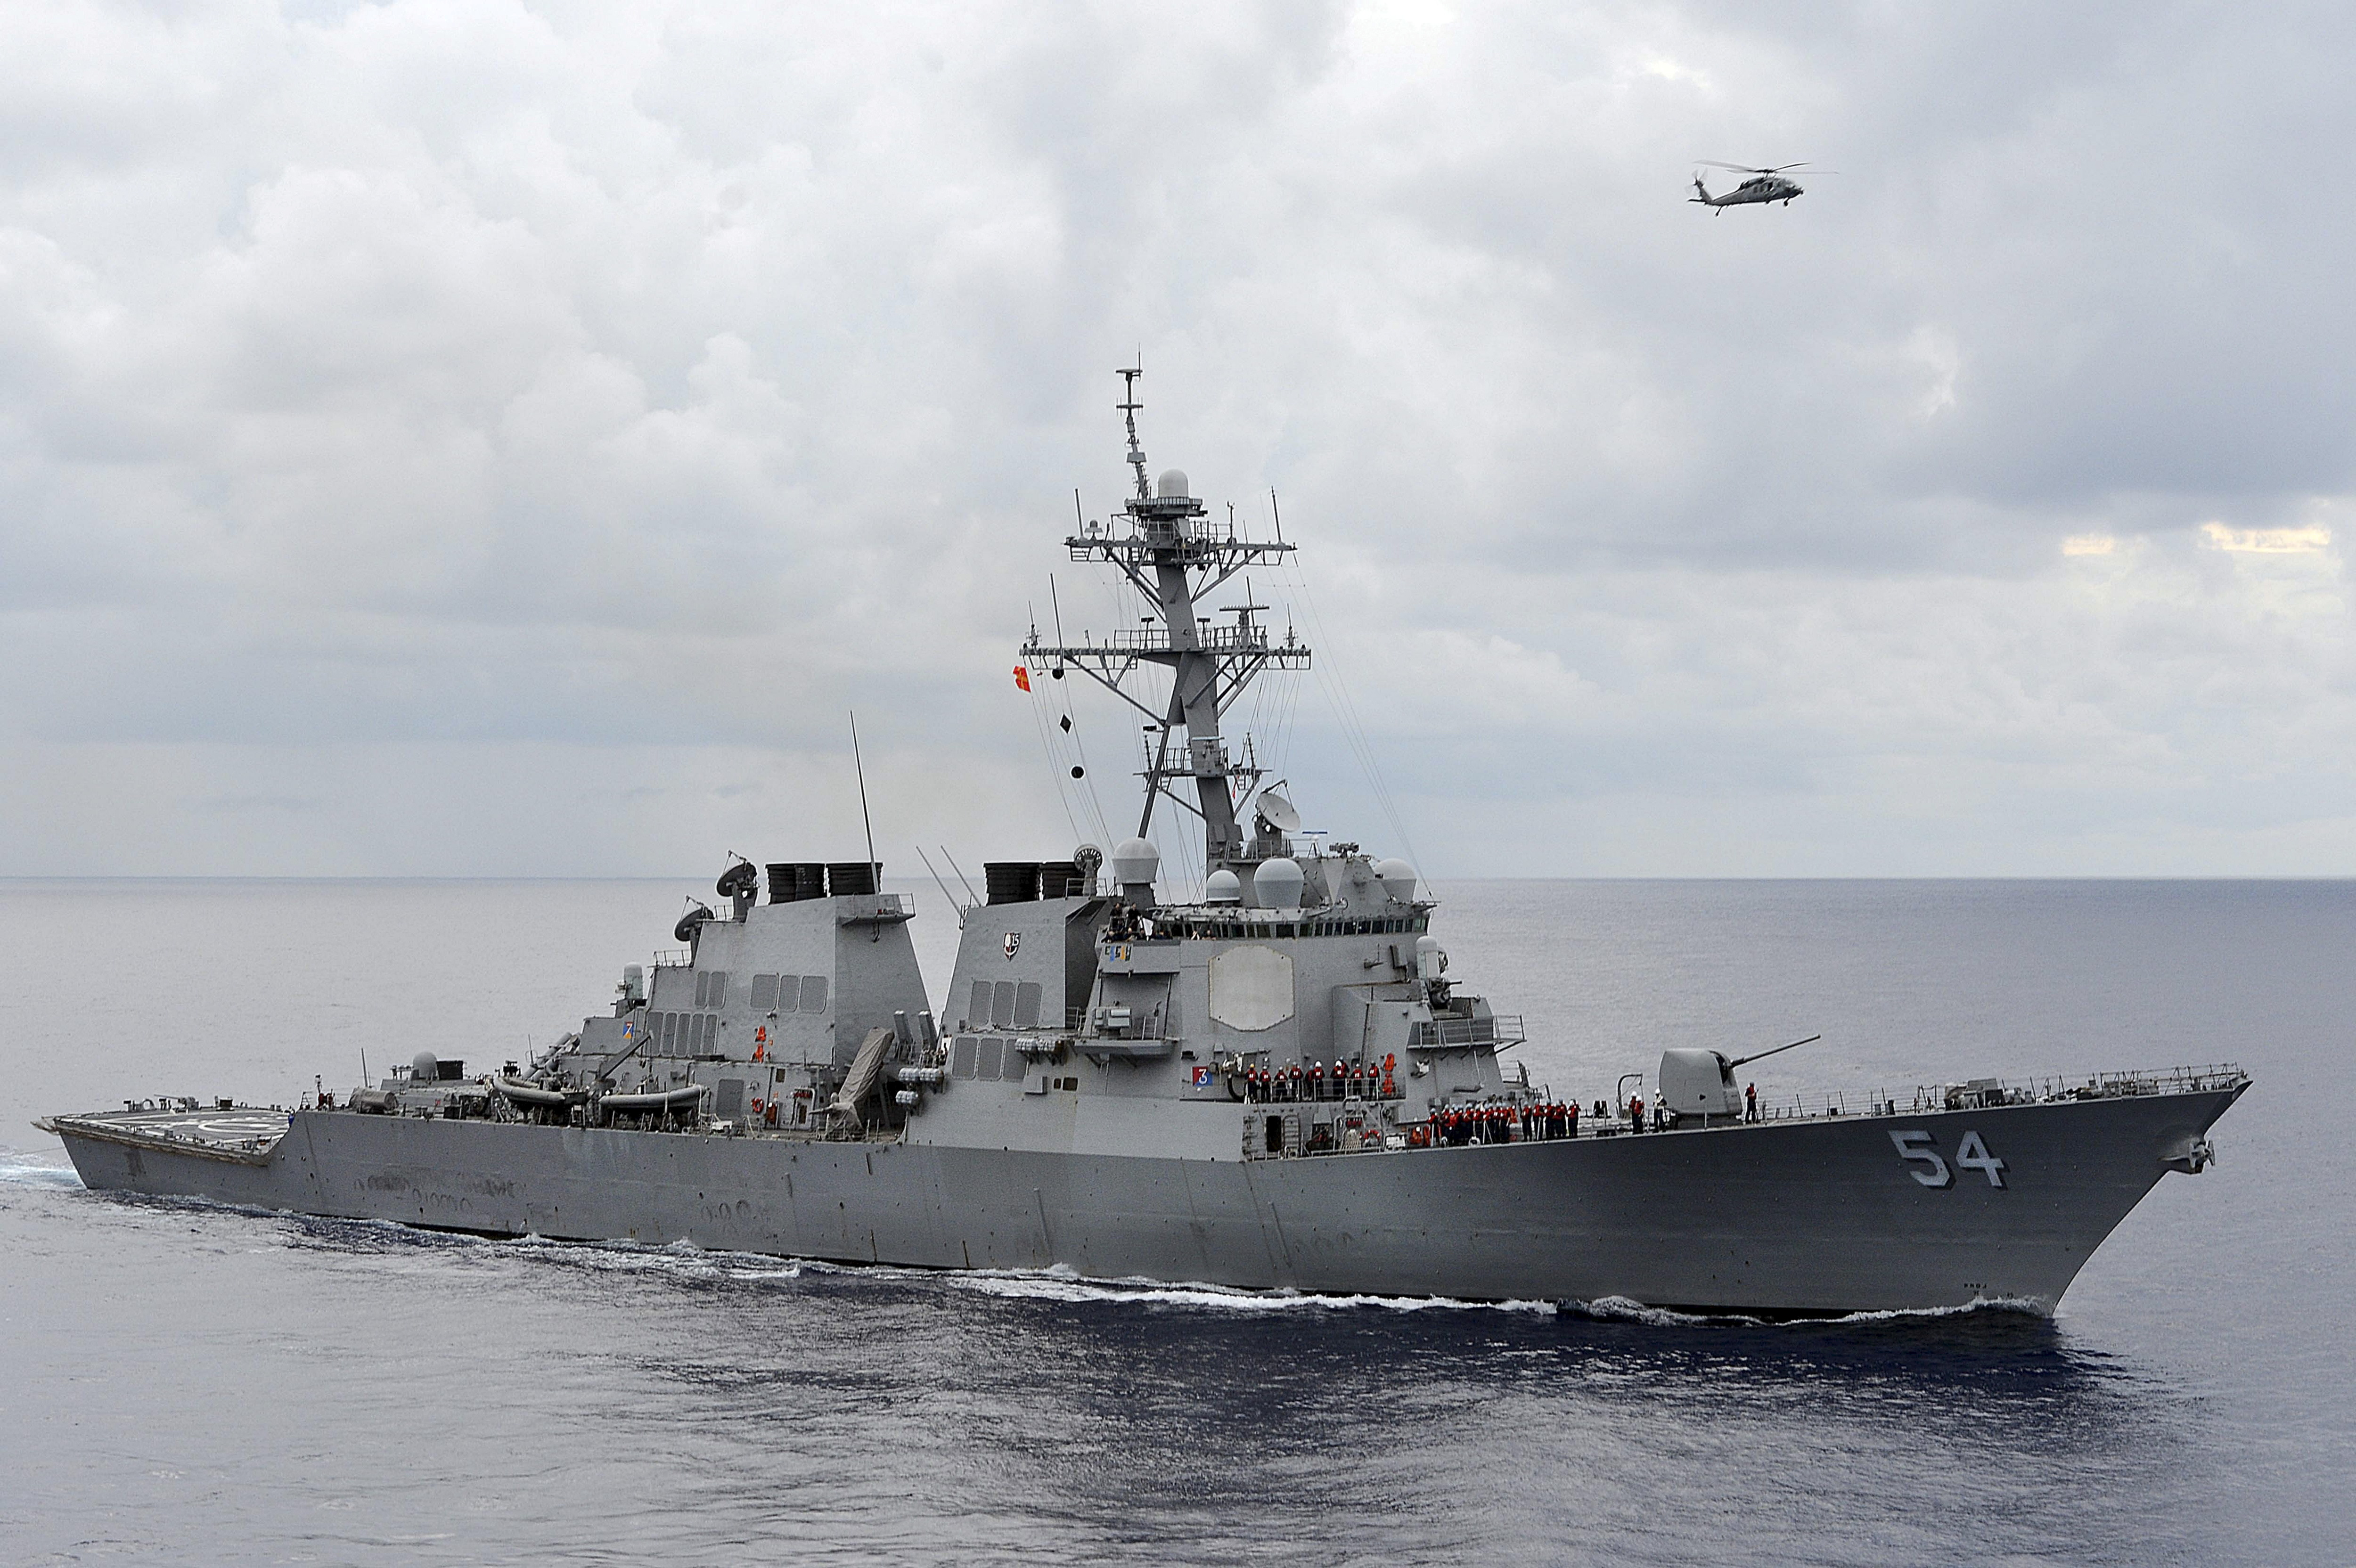 The U.S. Navy guided-missile destroyer USS Curtis Wilbur patrols in the Philippine Sea in this August 15, 2013 file photo. REUTERS/U.S. Navy/Mass Communication Specialist 3rd Class Declan Barnes/Handout via Reuters